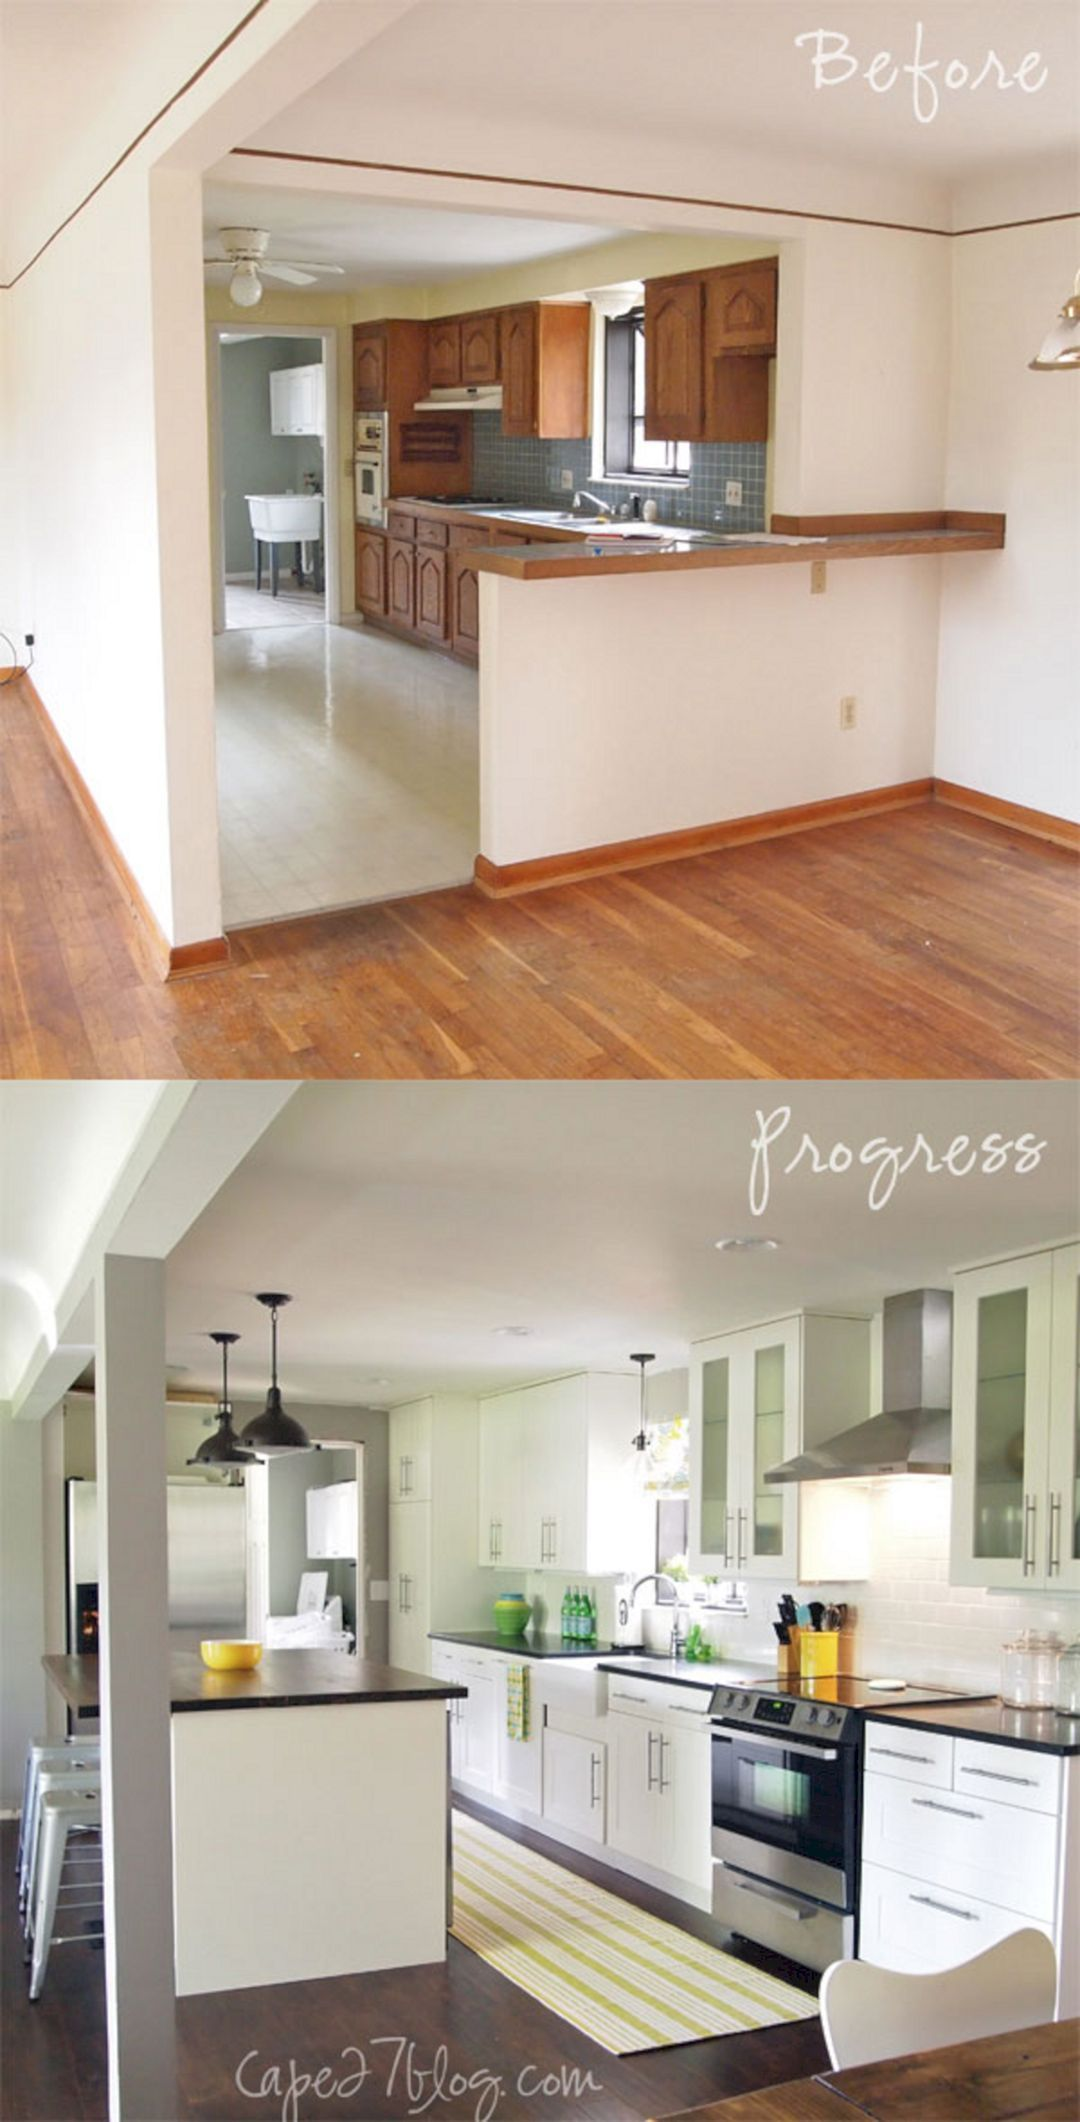 123 Best Inspirations Smart Home Renovation Ideas On A Budget 7001 Kitchen Remodel Inspiration Small Kitchen Renovations Kitchen Renovation